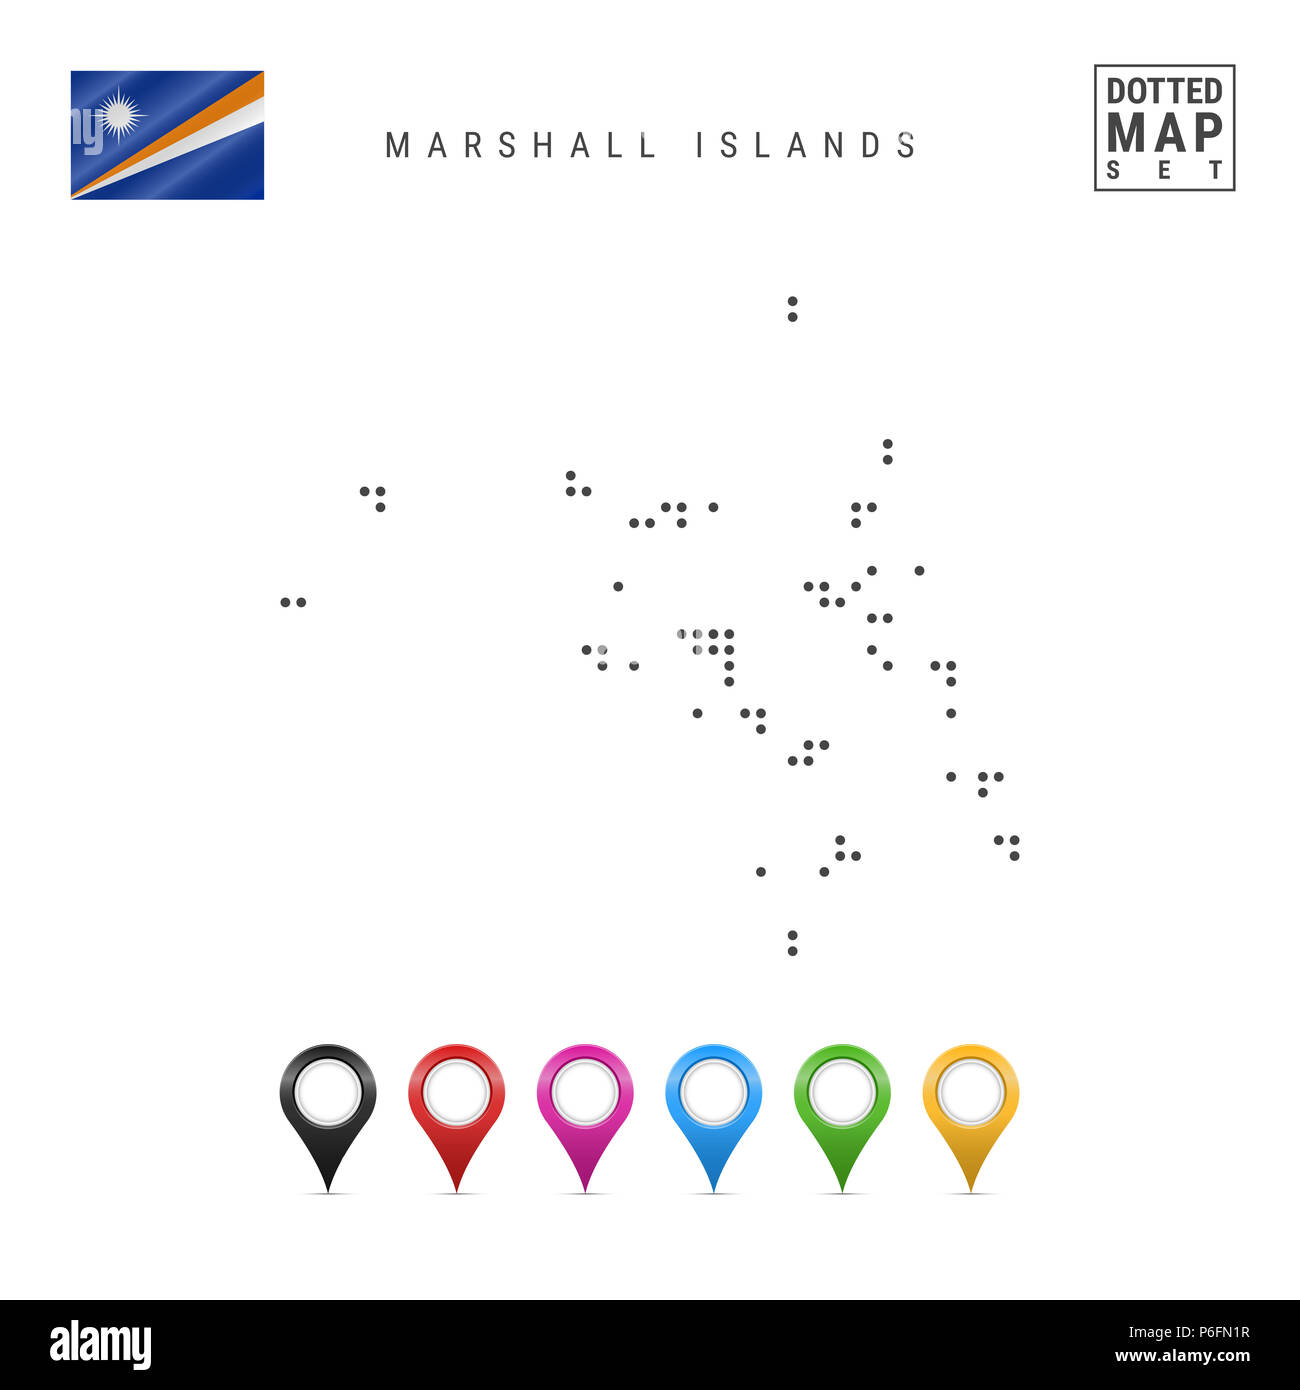 Dotted Map of Marshall Islands. Simple Silhouette of Marshall Islands. The National Flag of Marshall Islands. Set of Multicolored Map Markers. Illustr - Stock Image